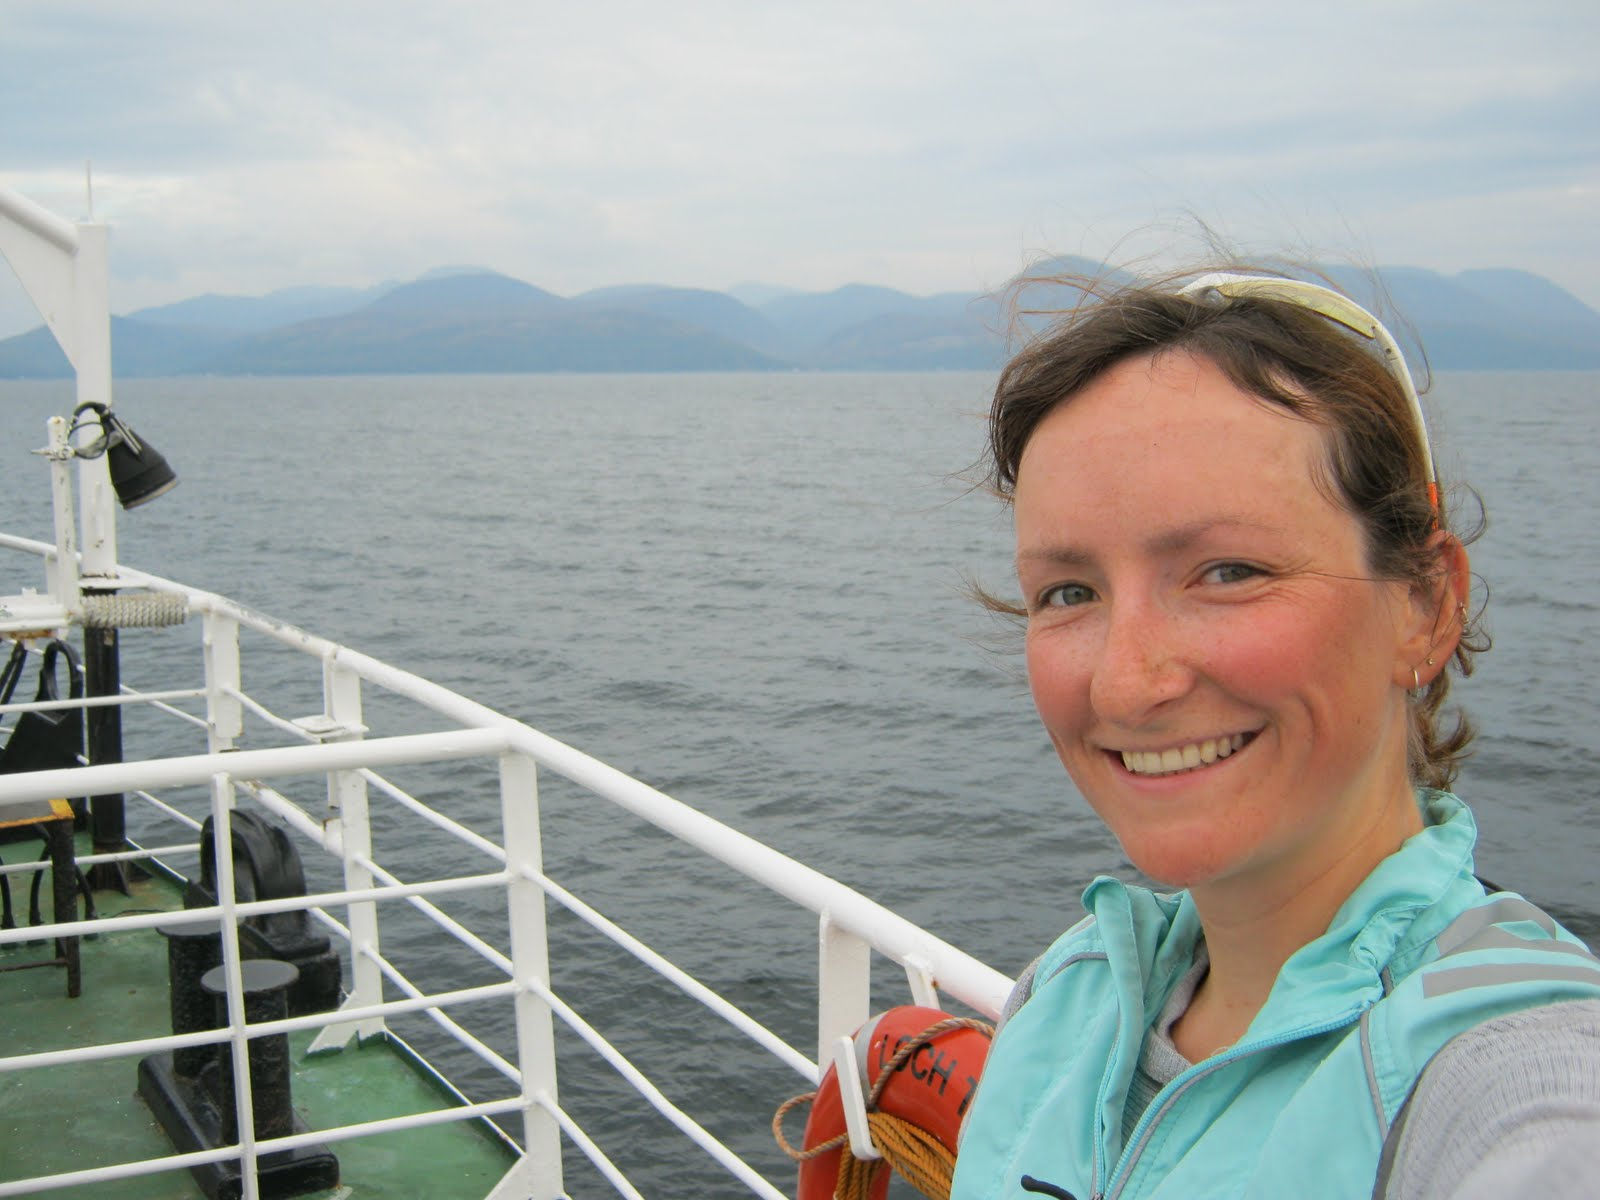 Anna on the boat to Arran